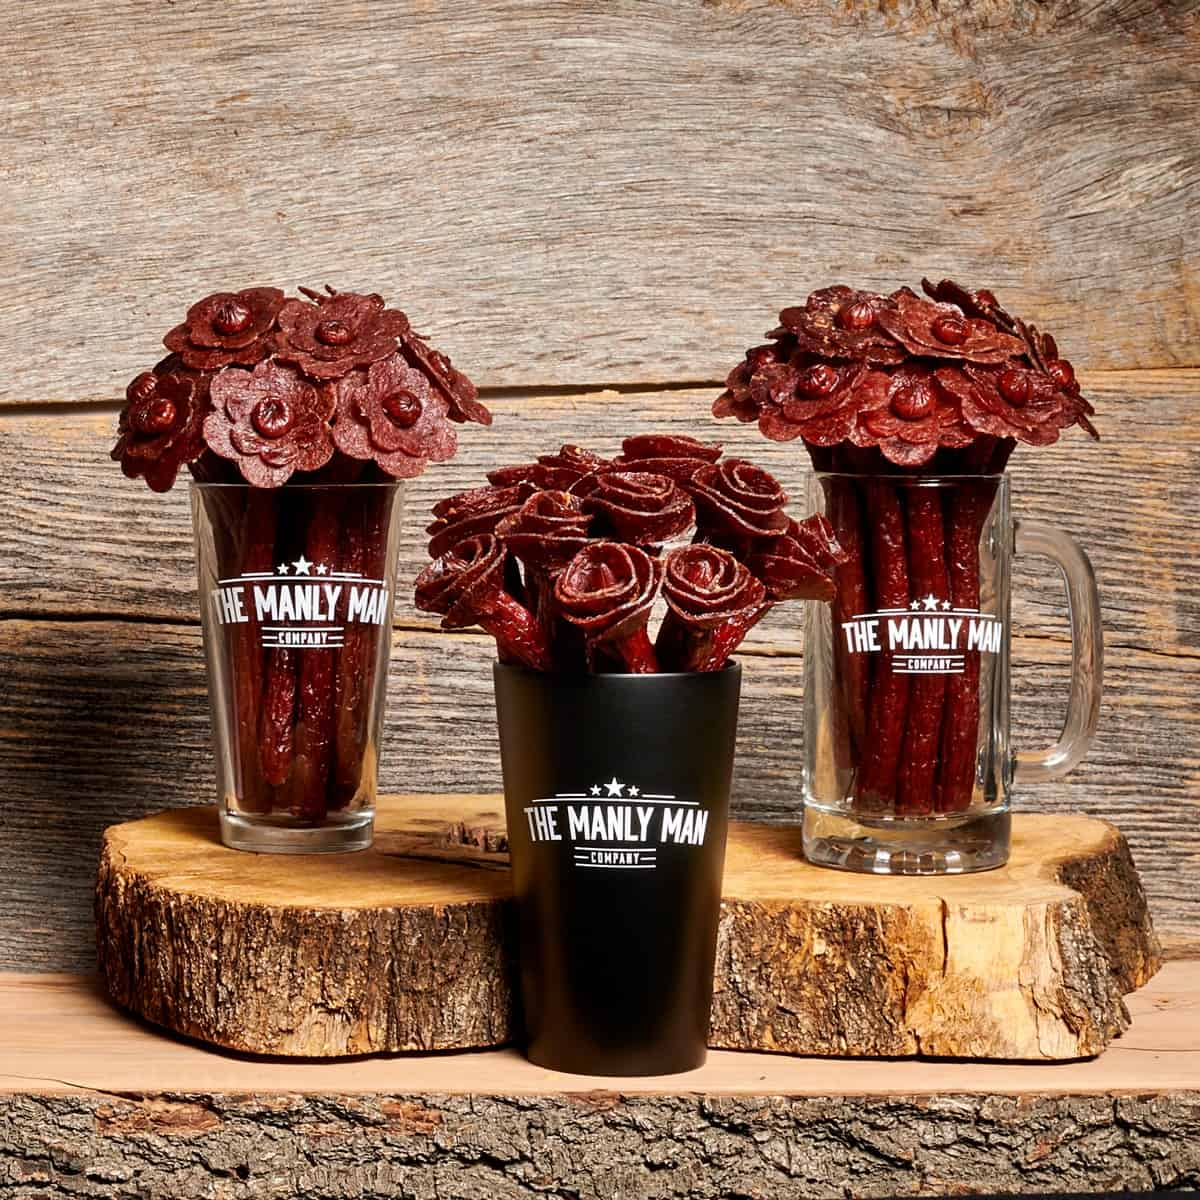 Think your guy doesn't want flowers for Valentine's Day? You haven't seen the Manly Man Company' beef jerky bouquet yet! Trust me, he'll want these flowers!